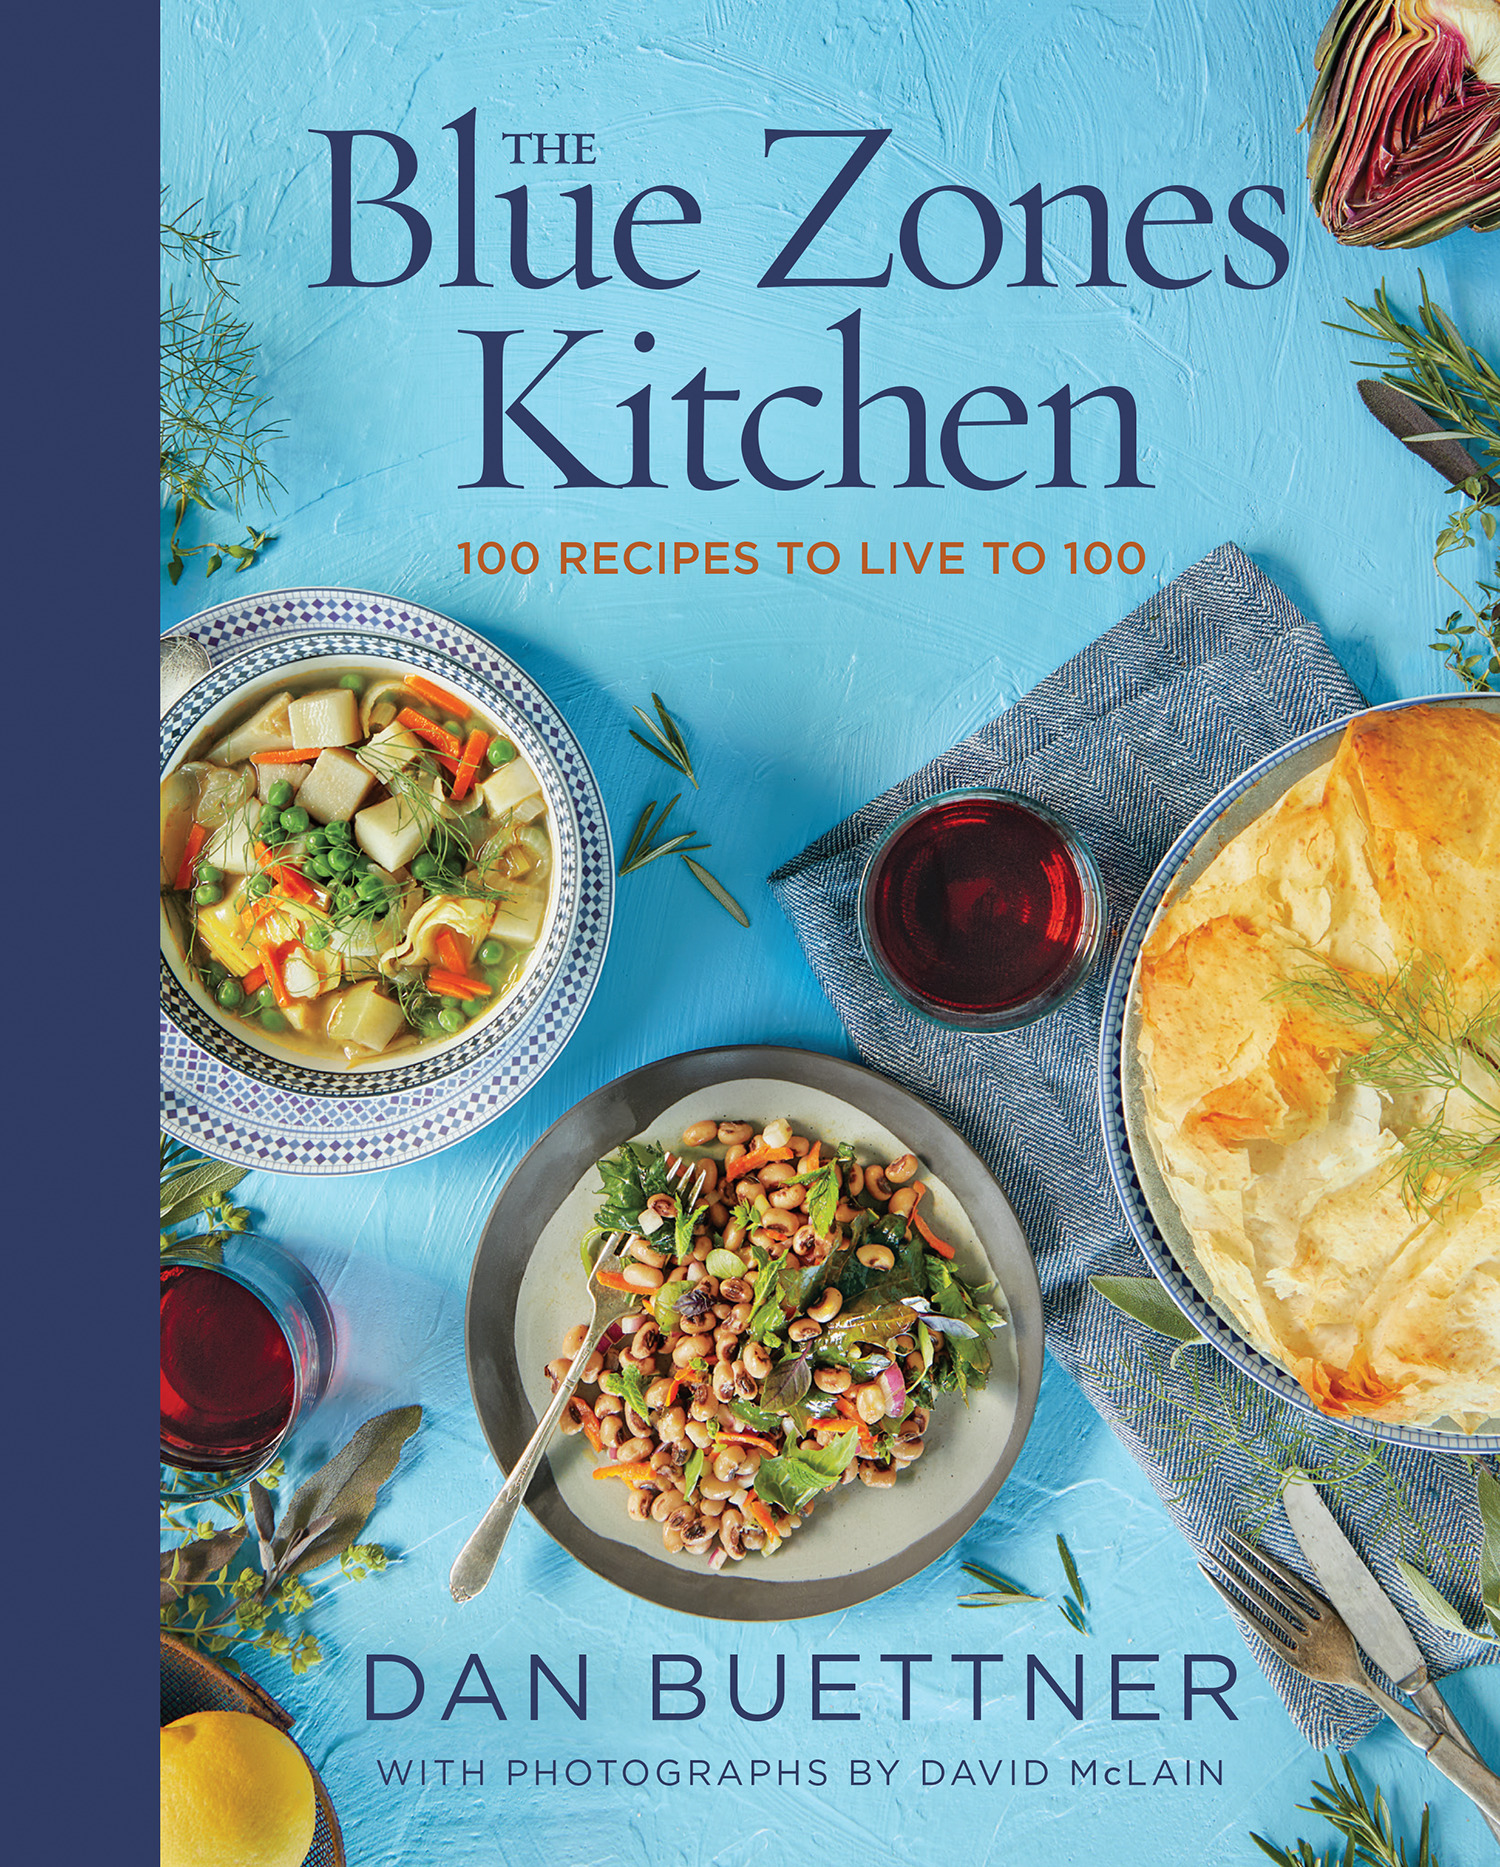 The Blue Zones Kitchen [electronic resource (downloadable eBook)] : 100 Recipes to Live to 100